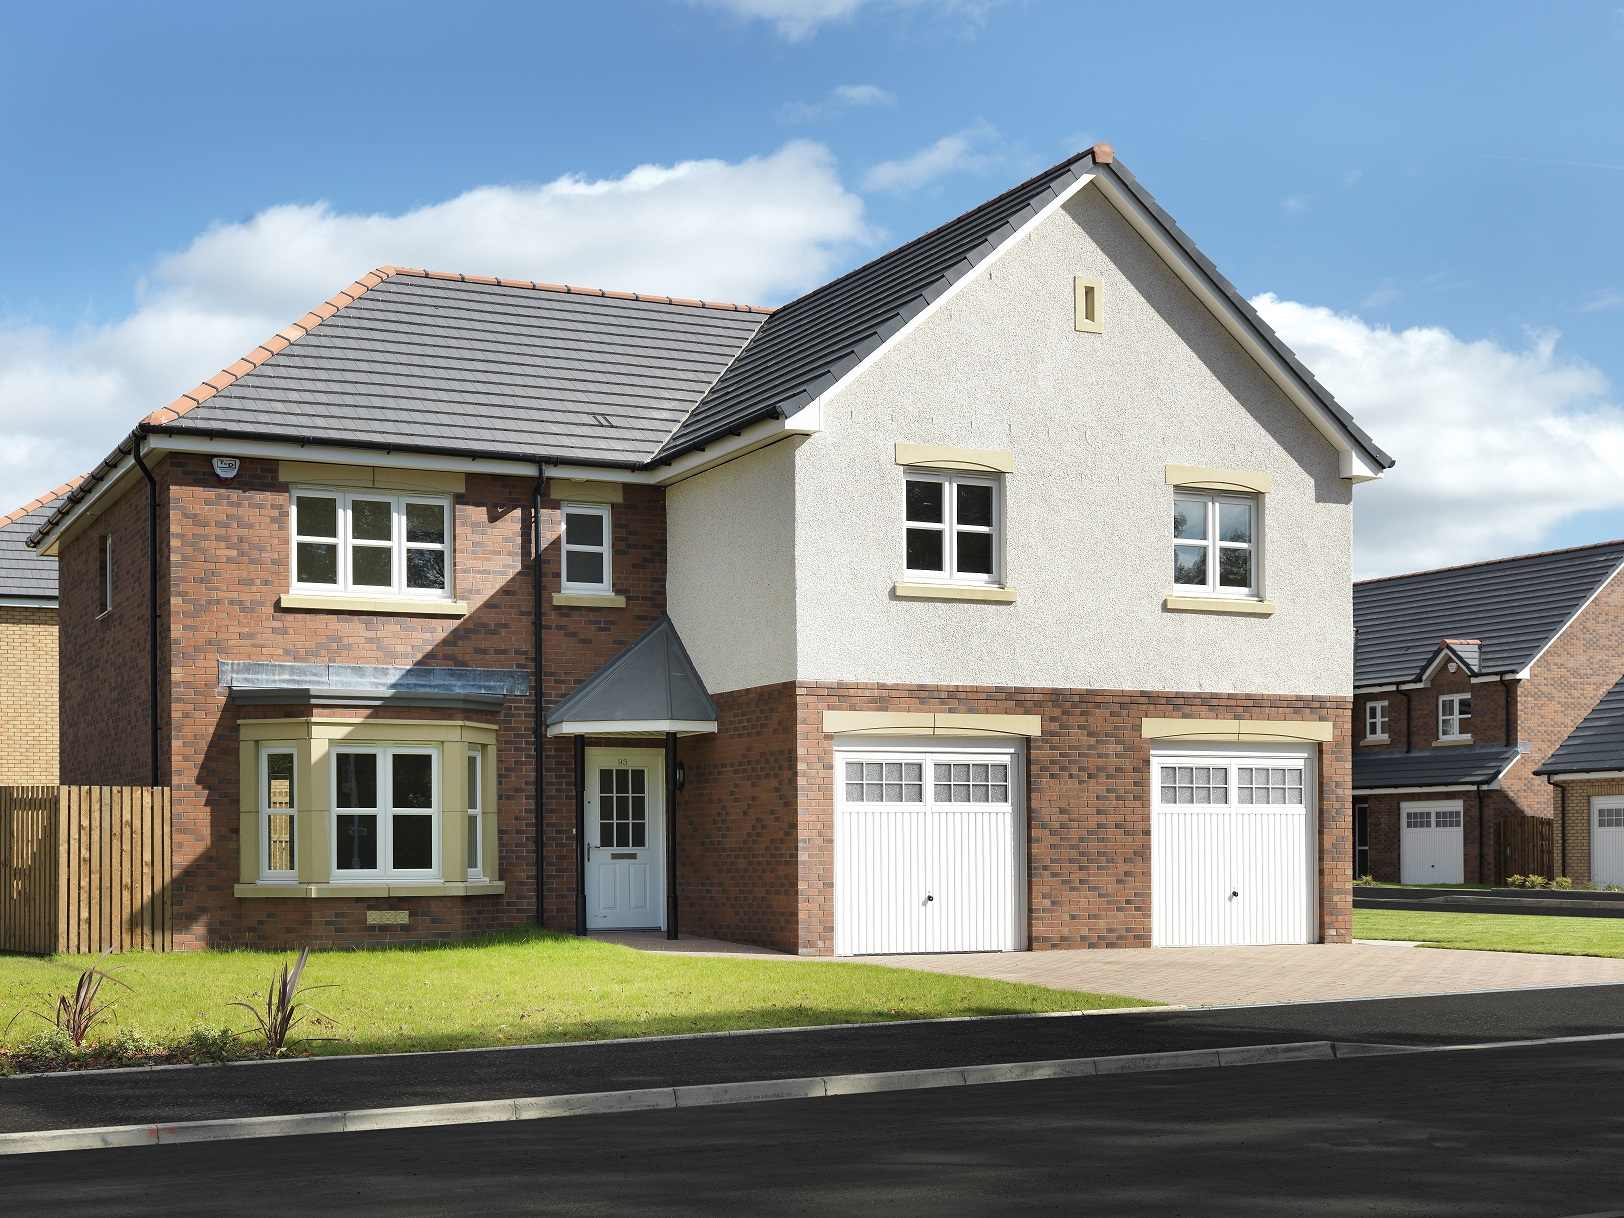 Miller homes to build another 205 homes in scotland for Houses to build